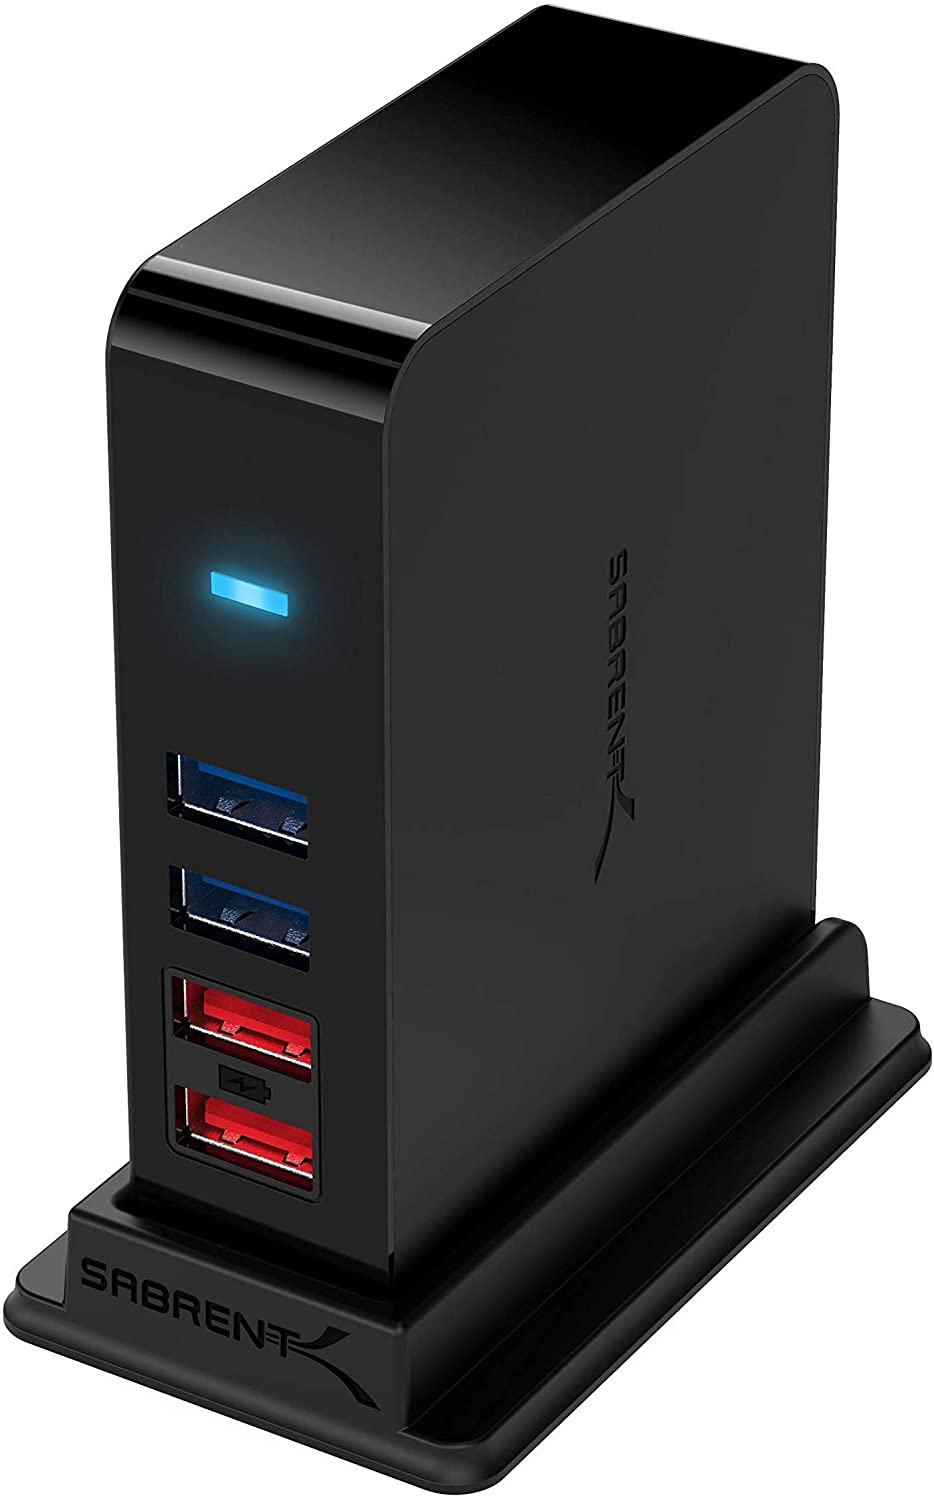 Sabrent 36W 7-Port USB 3.0 Hub with Individual Power Switches